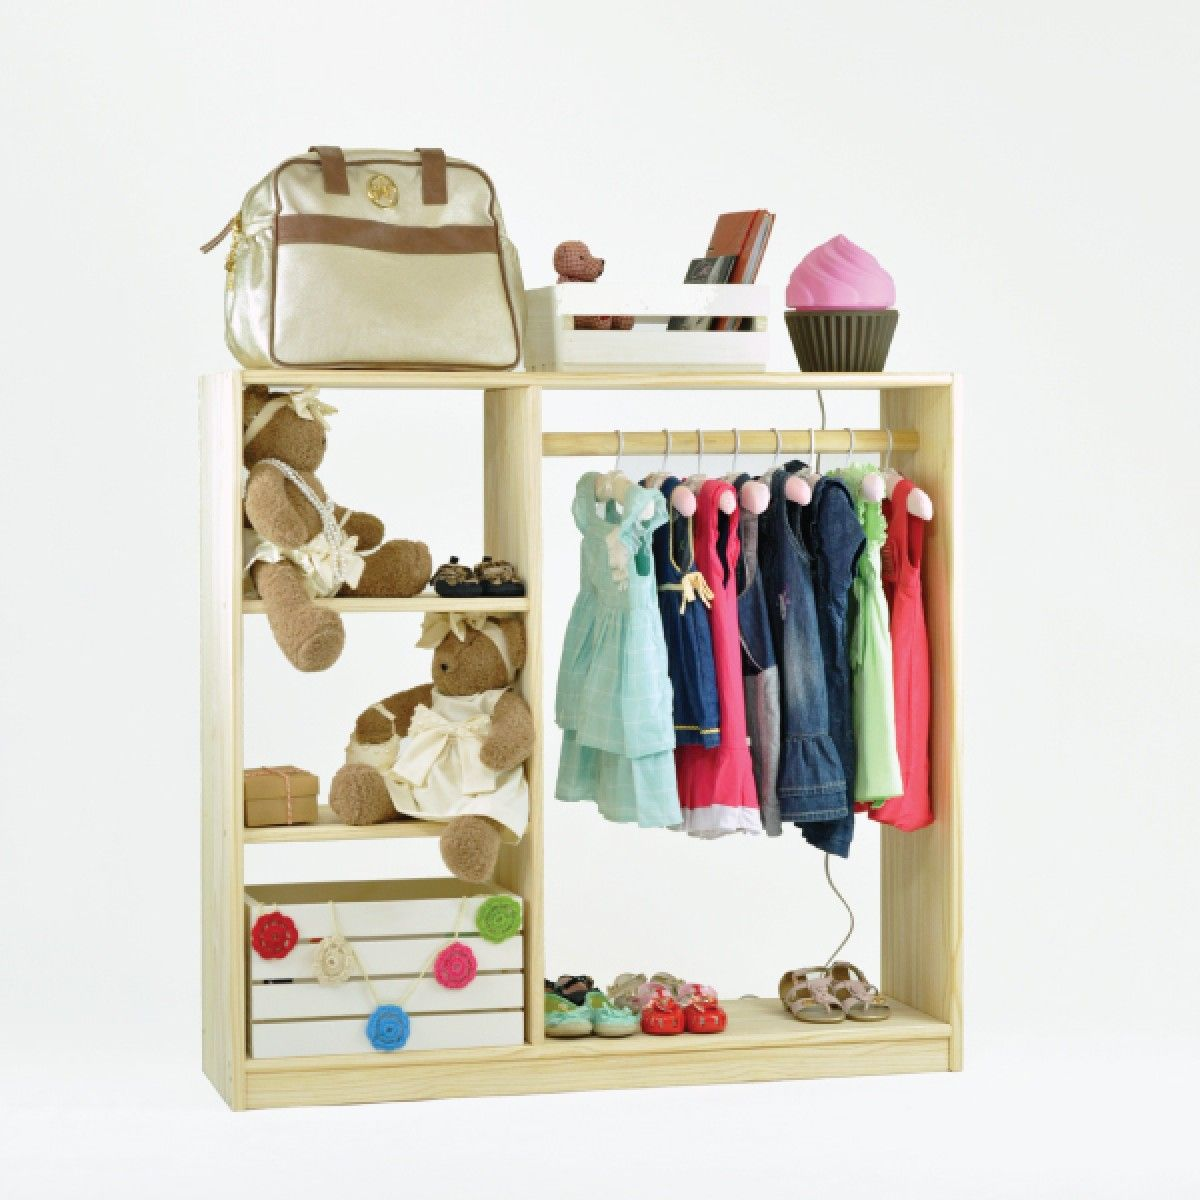 Closet Infantil Montessori - Tadah! Design | Muebles | Pinterest ...